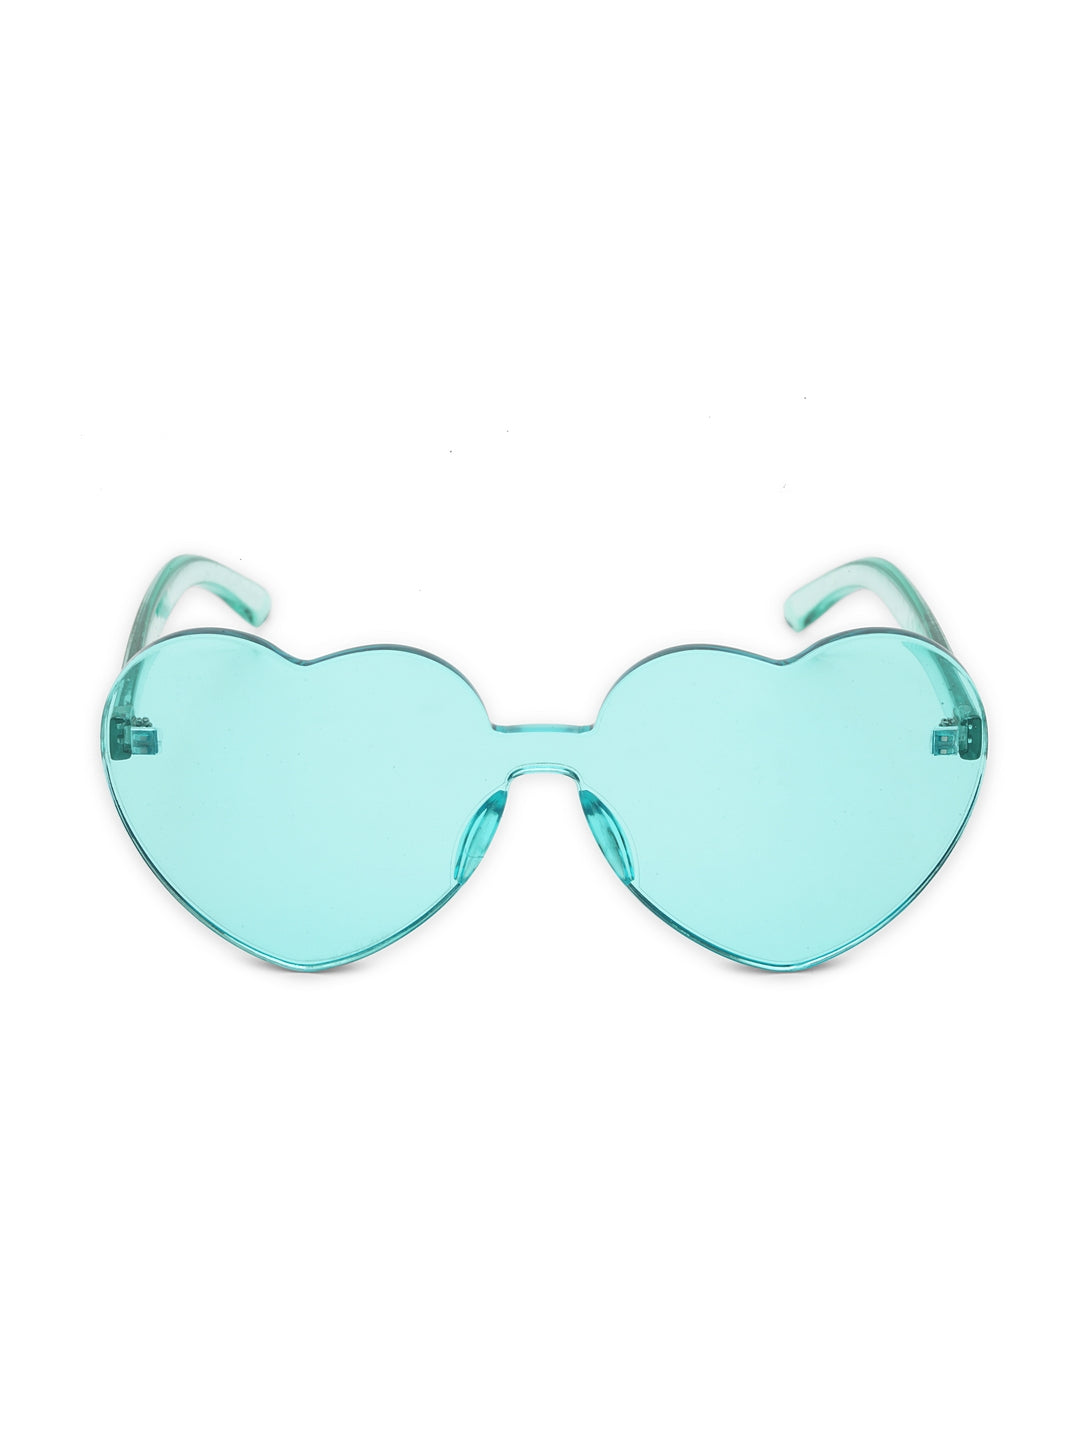 Avant-Garde Paris Heart Shaped Cool Beach Sunglasses